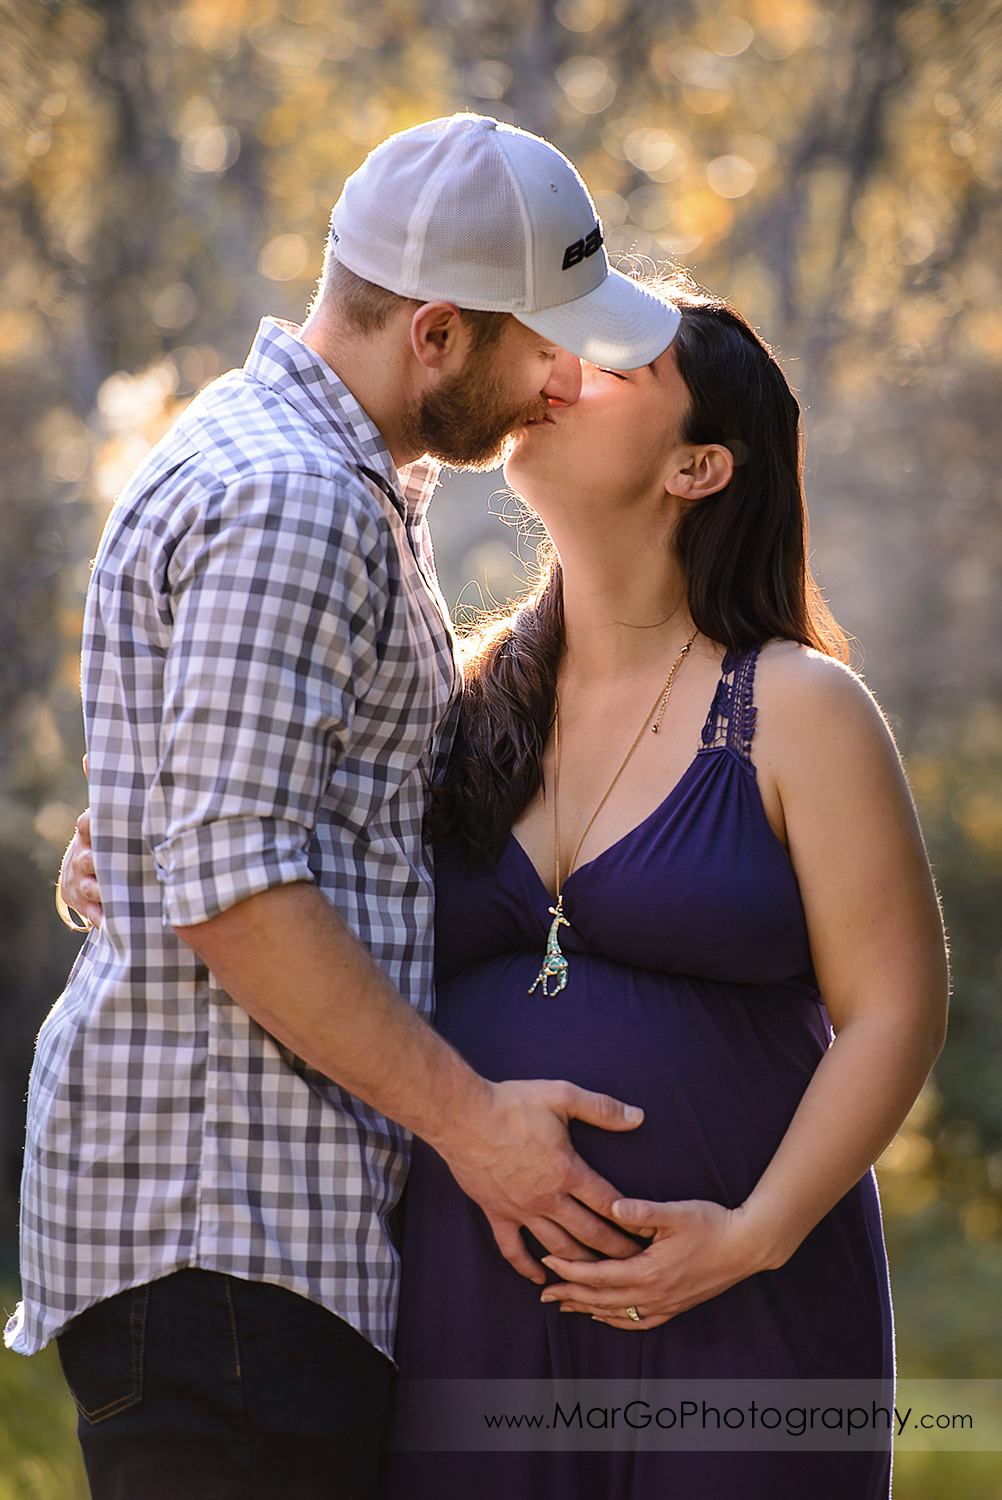 man in checkered shirt and pregnant woman in long violet dress kissing during maternity session at Ulistac Natural Area in Santa Clara